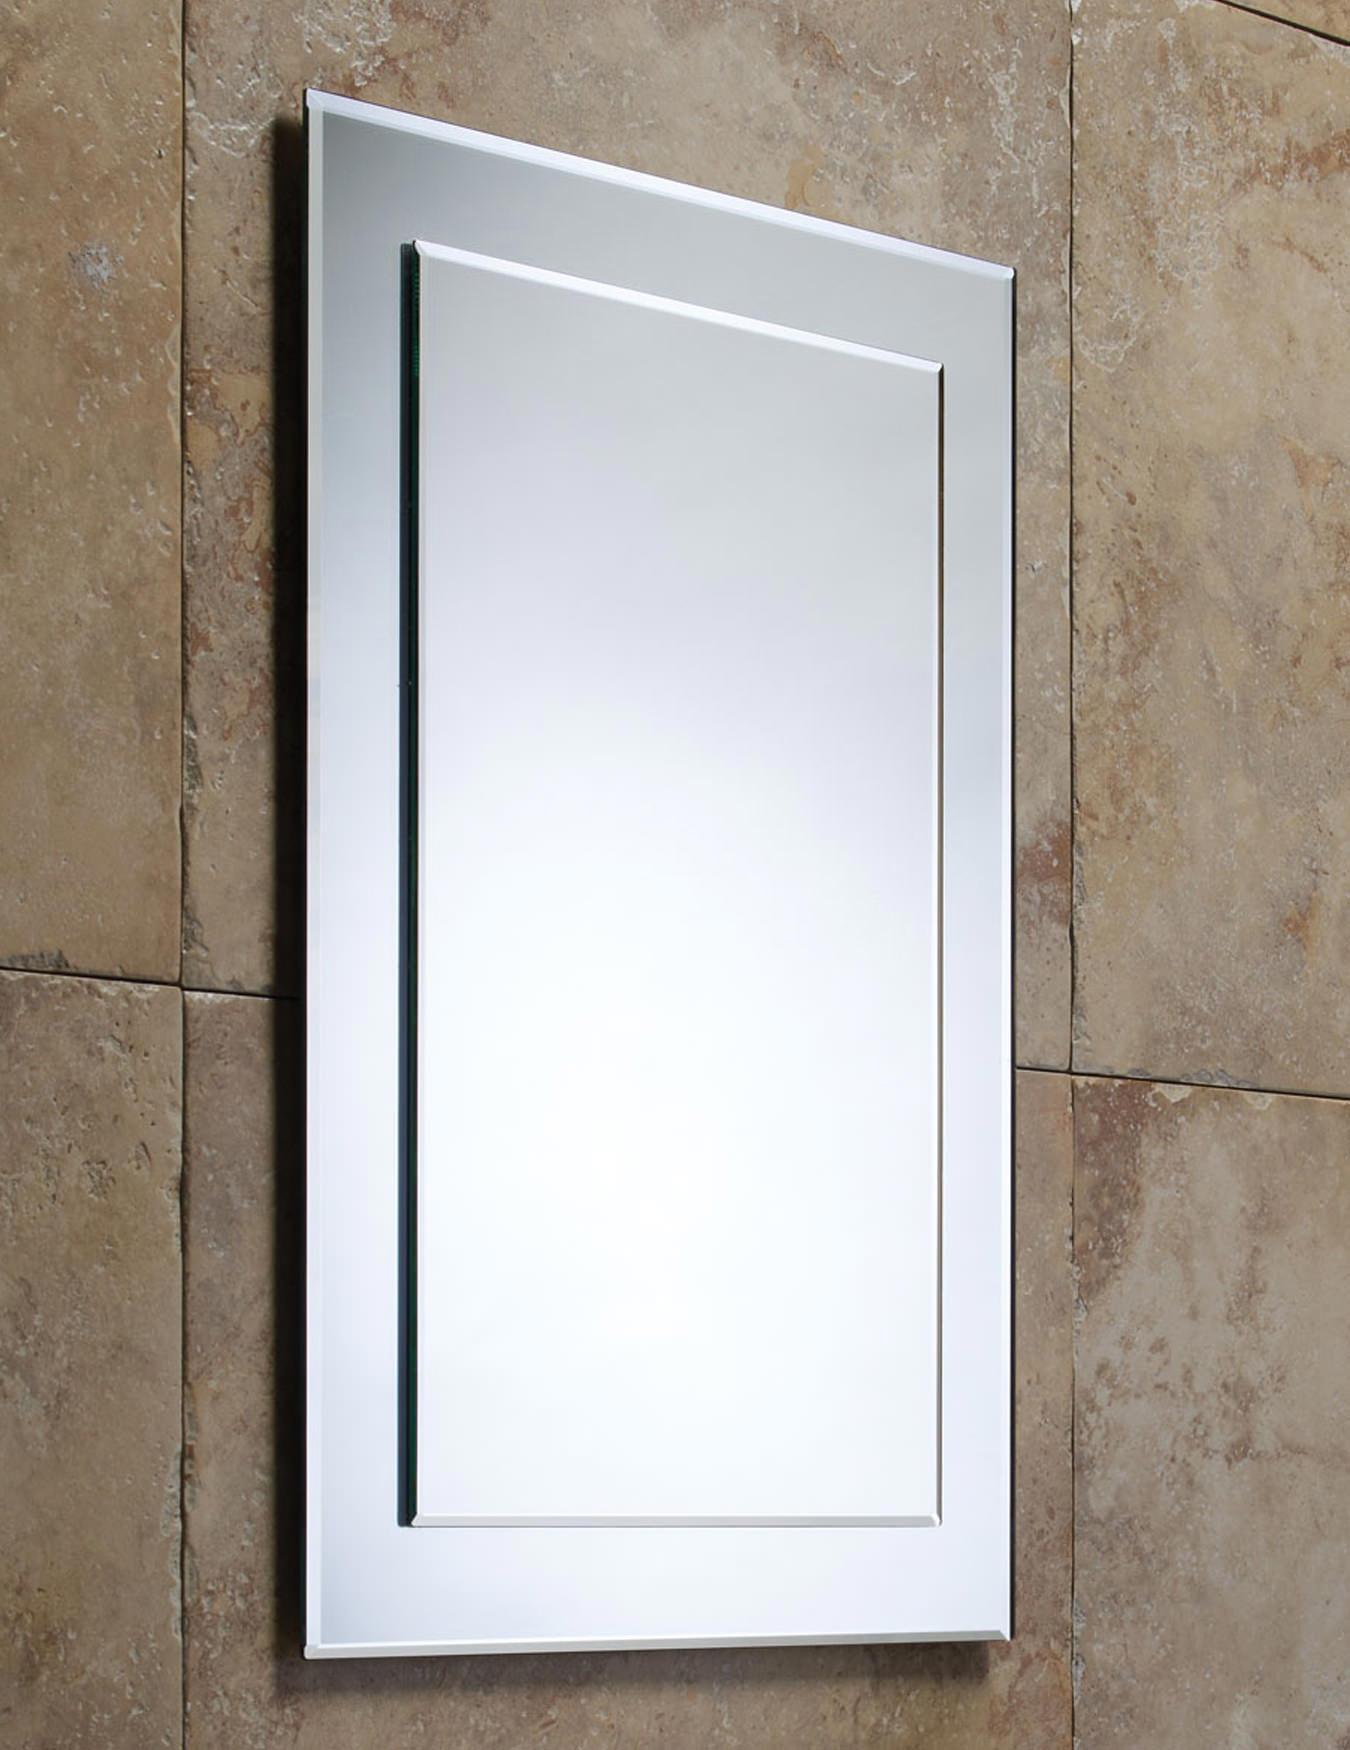 Roper rhodes elle bevelled mirror on mirror mps403 for Beveled mirror